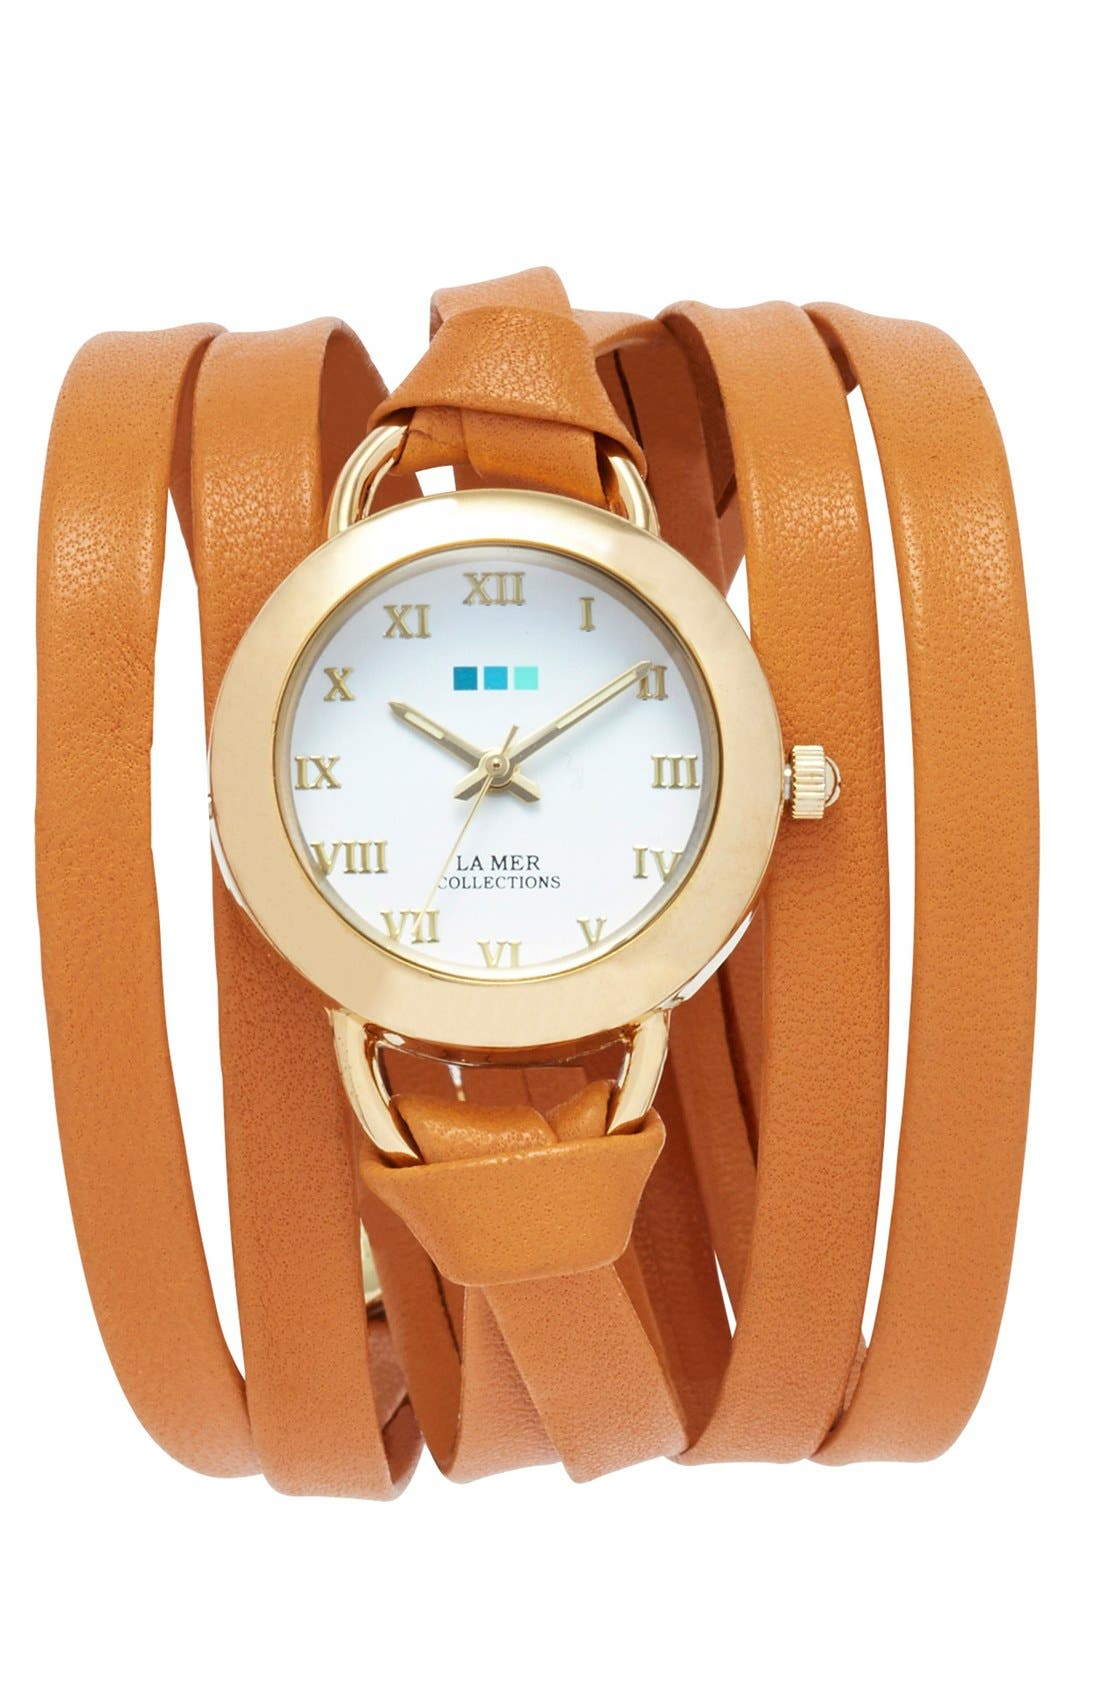 LA MER COLLECTIONS 'Saturn' Round Leather Wrap Watch, 32mm, Main, color, 200